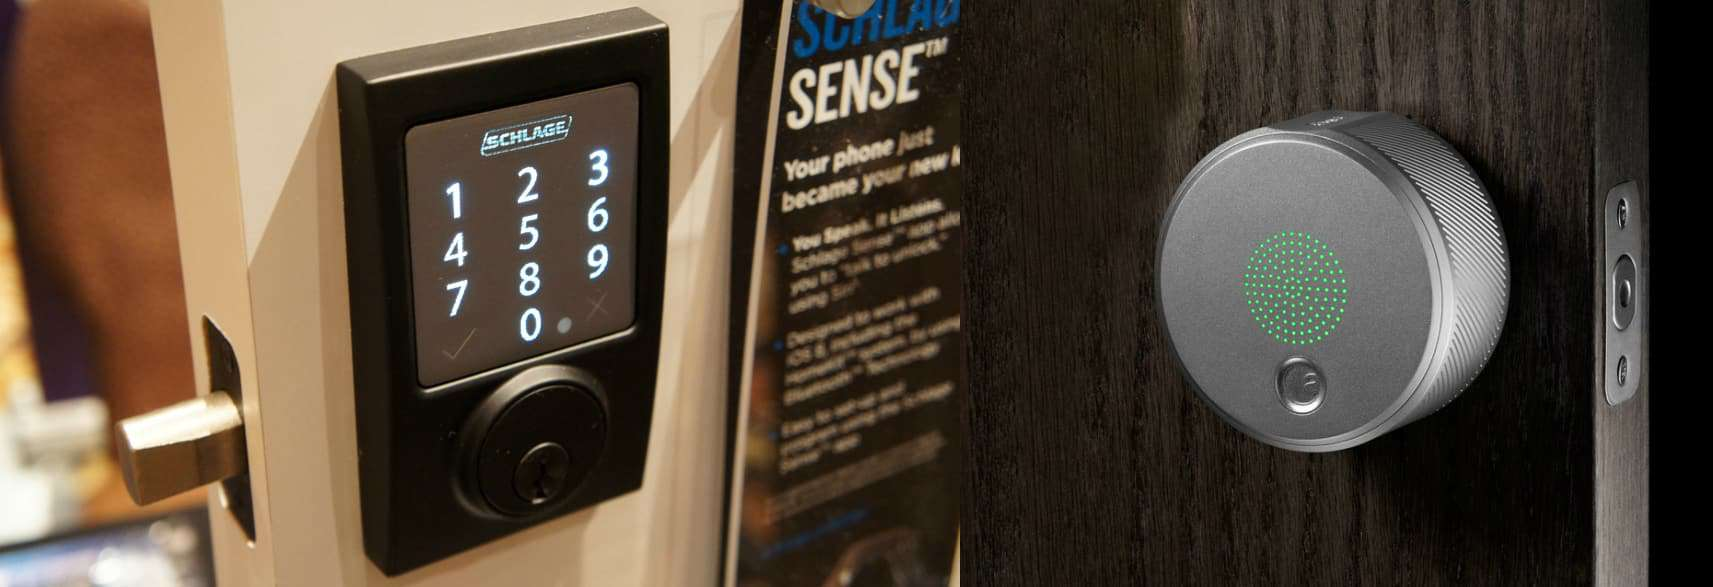 August Smart Lock Pro Vs Schlage Sense Smart Whats The